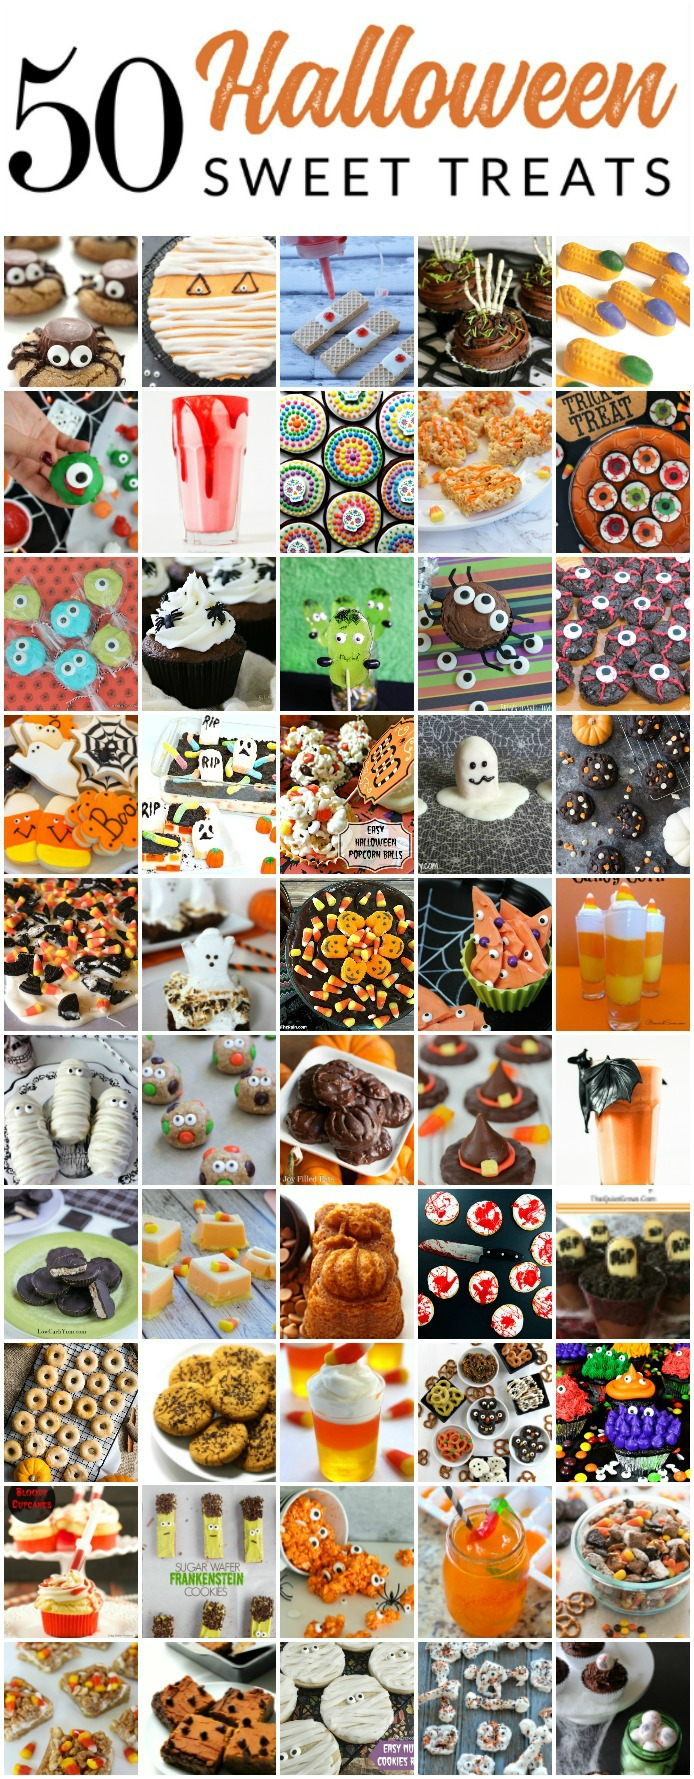 These sweet  treats for Halloween are ADORABLE! Check out these 50 Halloween Baking ideas, perfect for a party or small crowd. These Halloween recipes are just as cute as they are spooky! There are even a few healthy options.